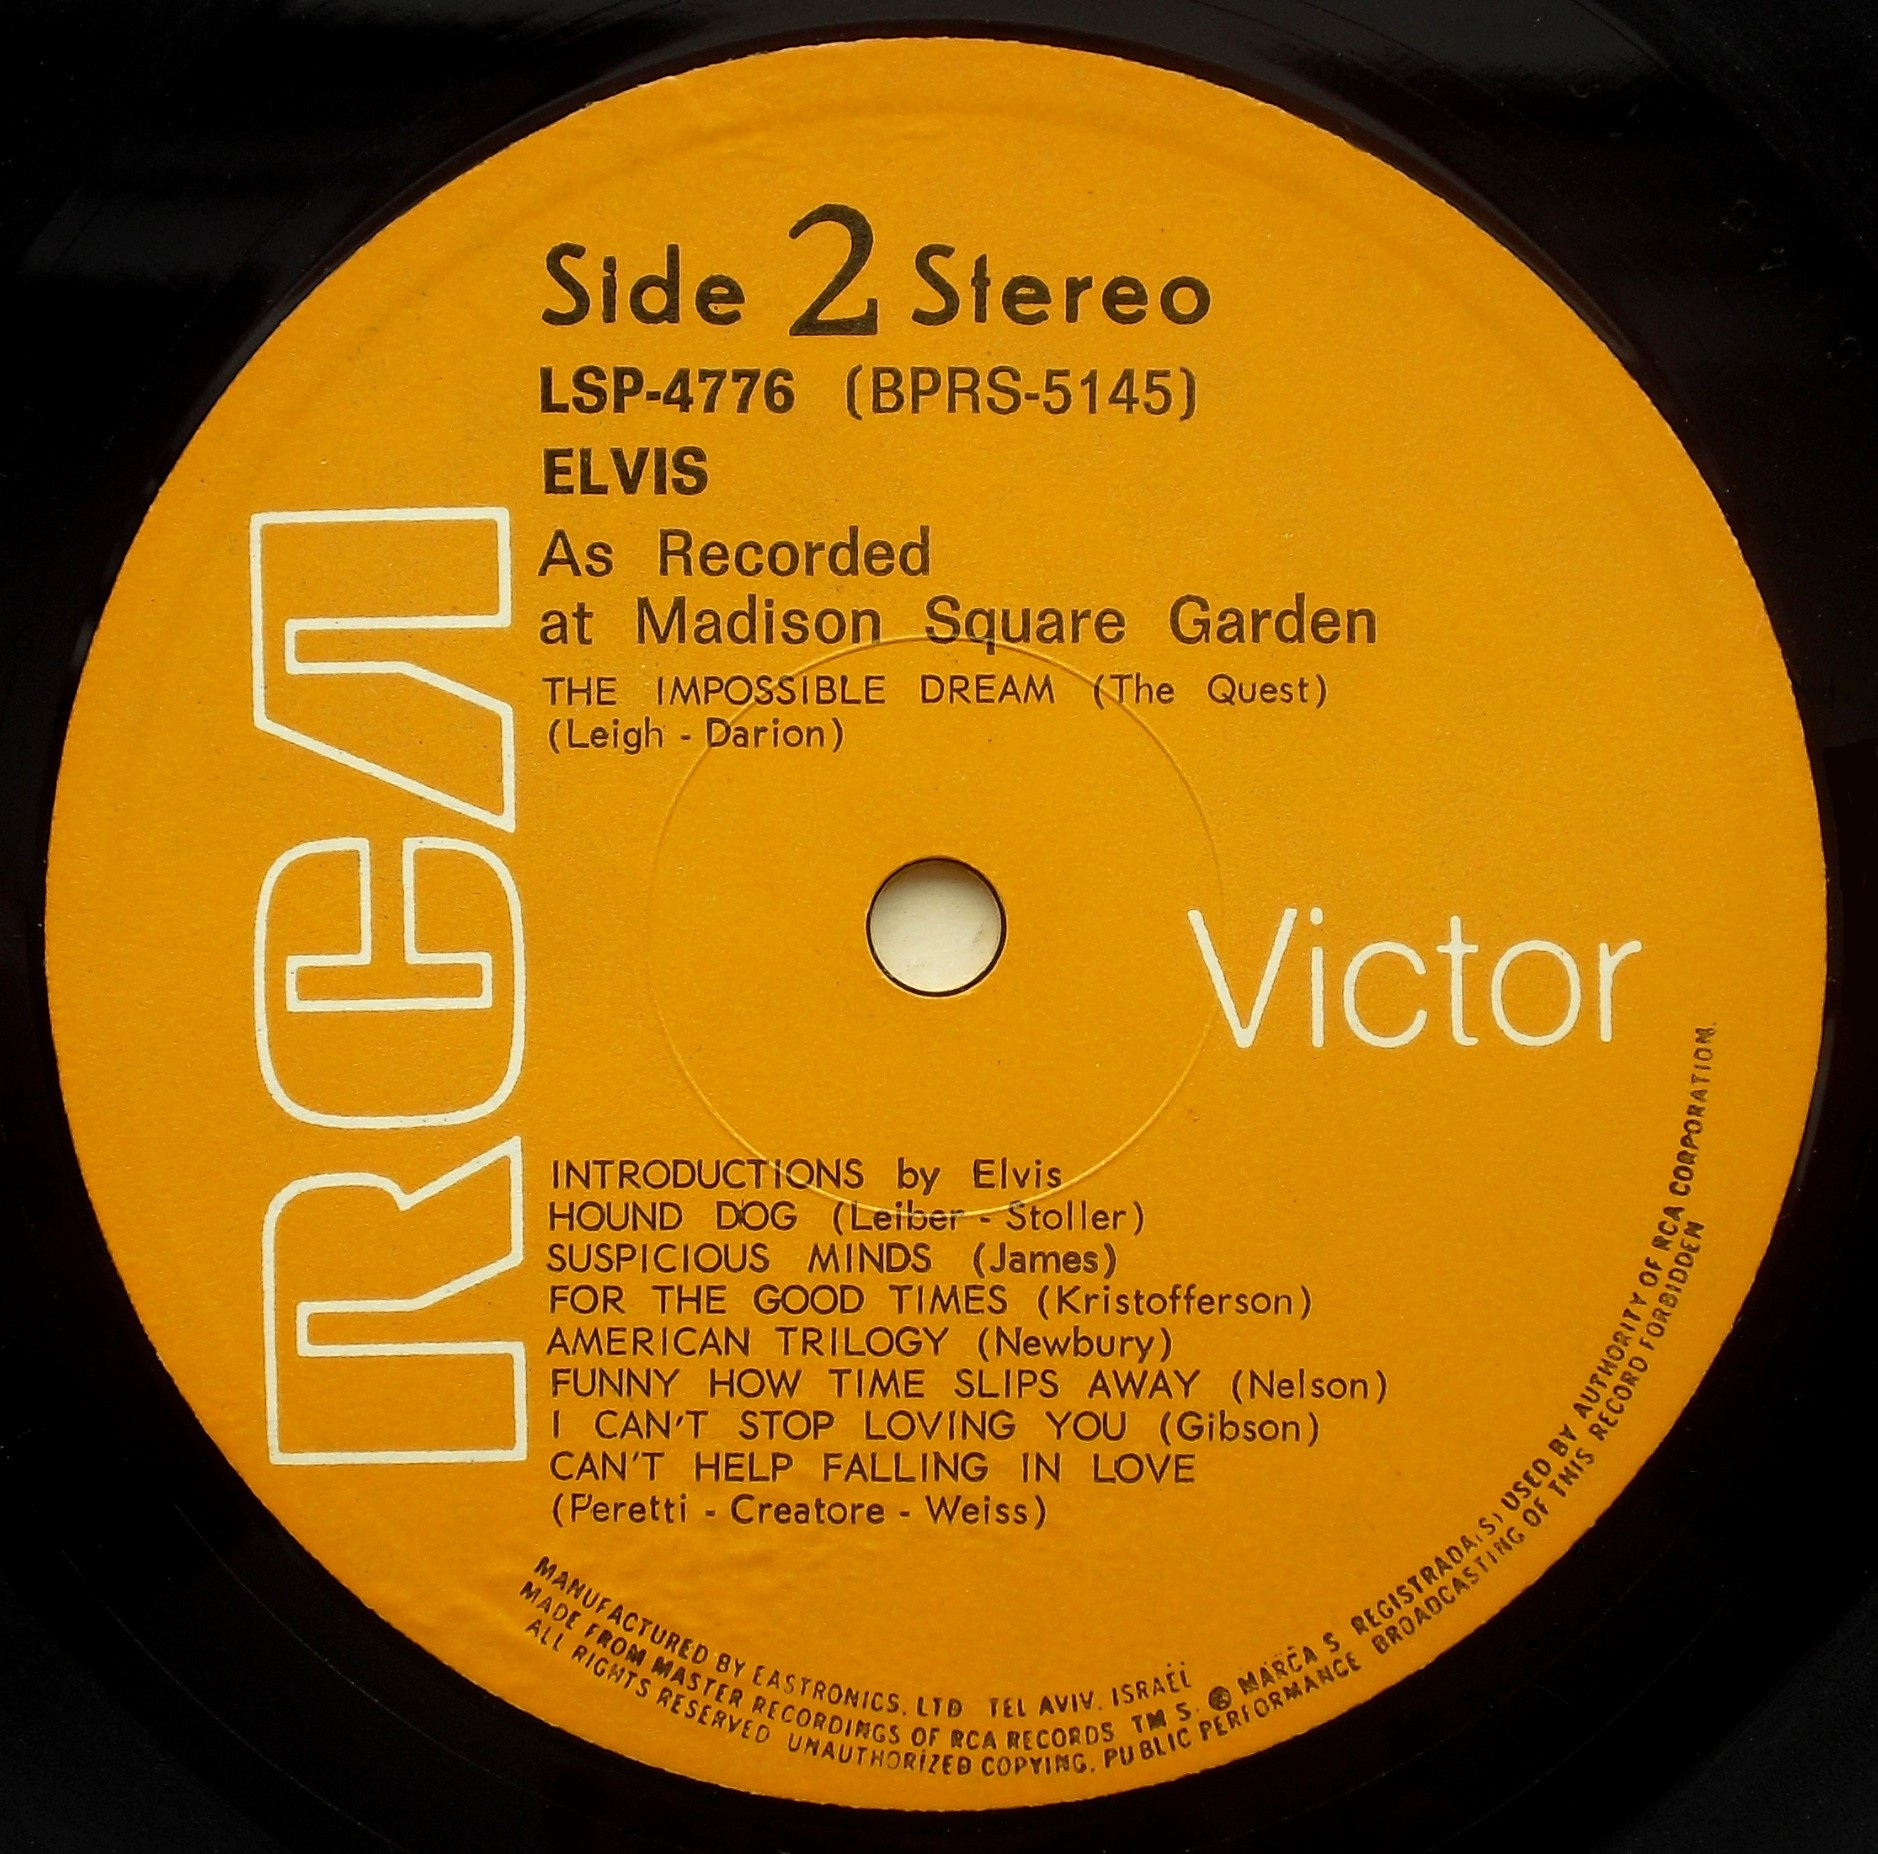 ELVIS AS RECORDED AT MADISON SQUARE GARDEN 03s2pvsek